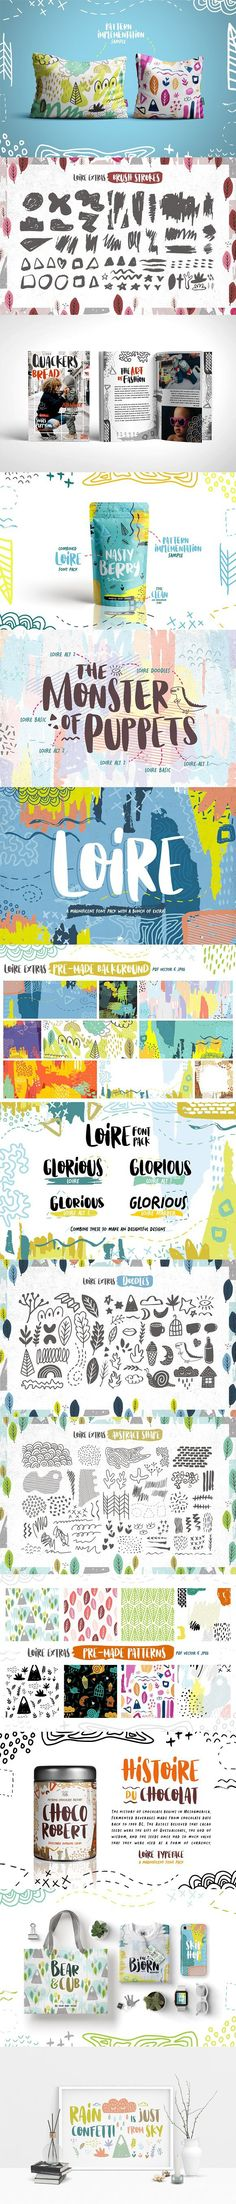 Loire Font Pack is 4 bold handdrawn font packed with a bunch of abstract shape, brush stroke, doodles and pre-made patterns and background. Brush Stroke Vector, Font Packs, Cute Fonts, Typographic Design, Abstract Shapes, Stationery Design, Lowercase A, Packaging Design